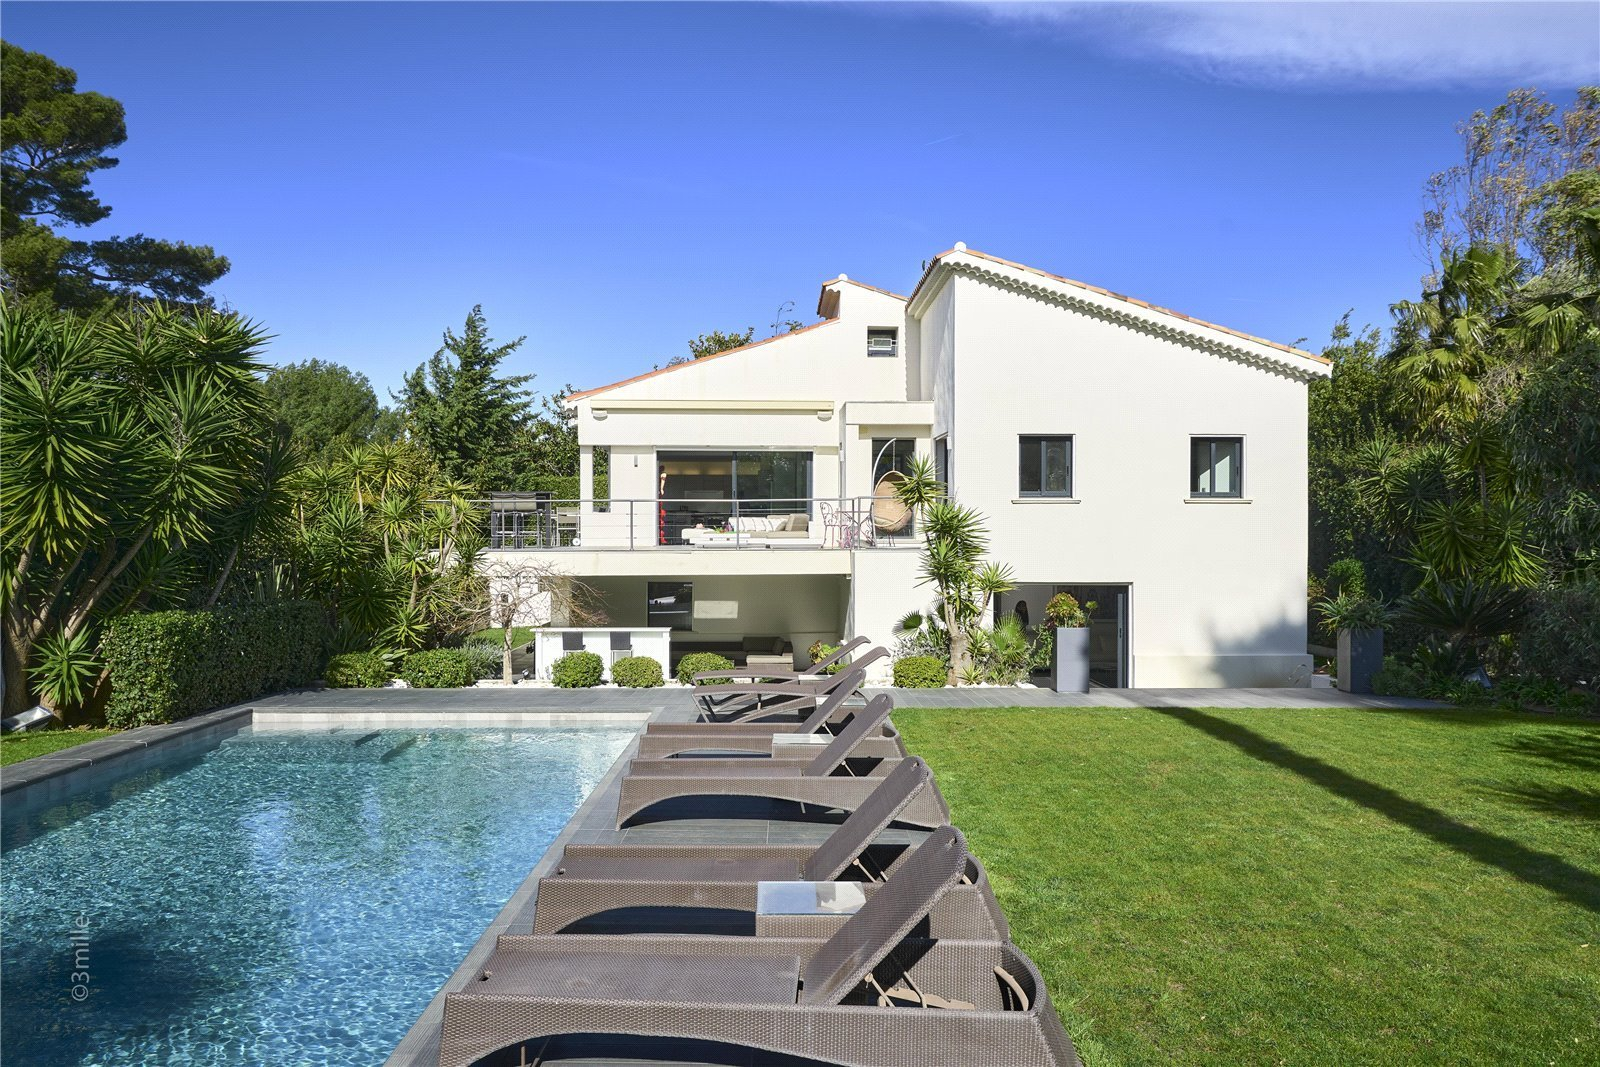 Buying Villa Cap d'Antibes Contemporary villa, boasting amazing sea views, set in landscaped grounds with pool, summer kitchen and carport.